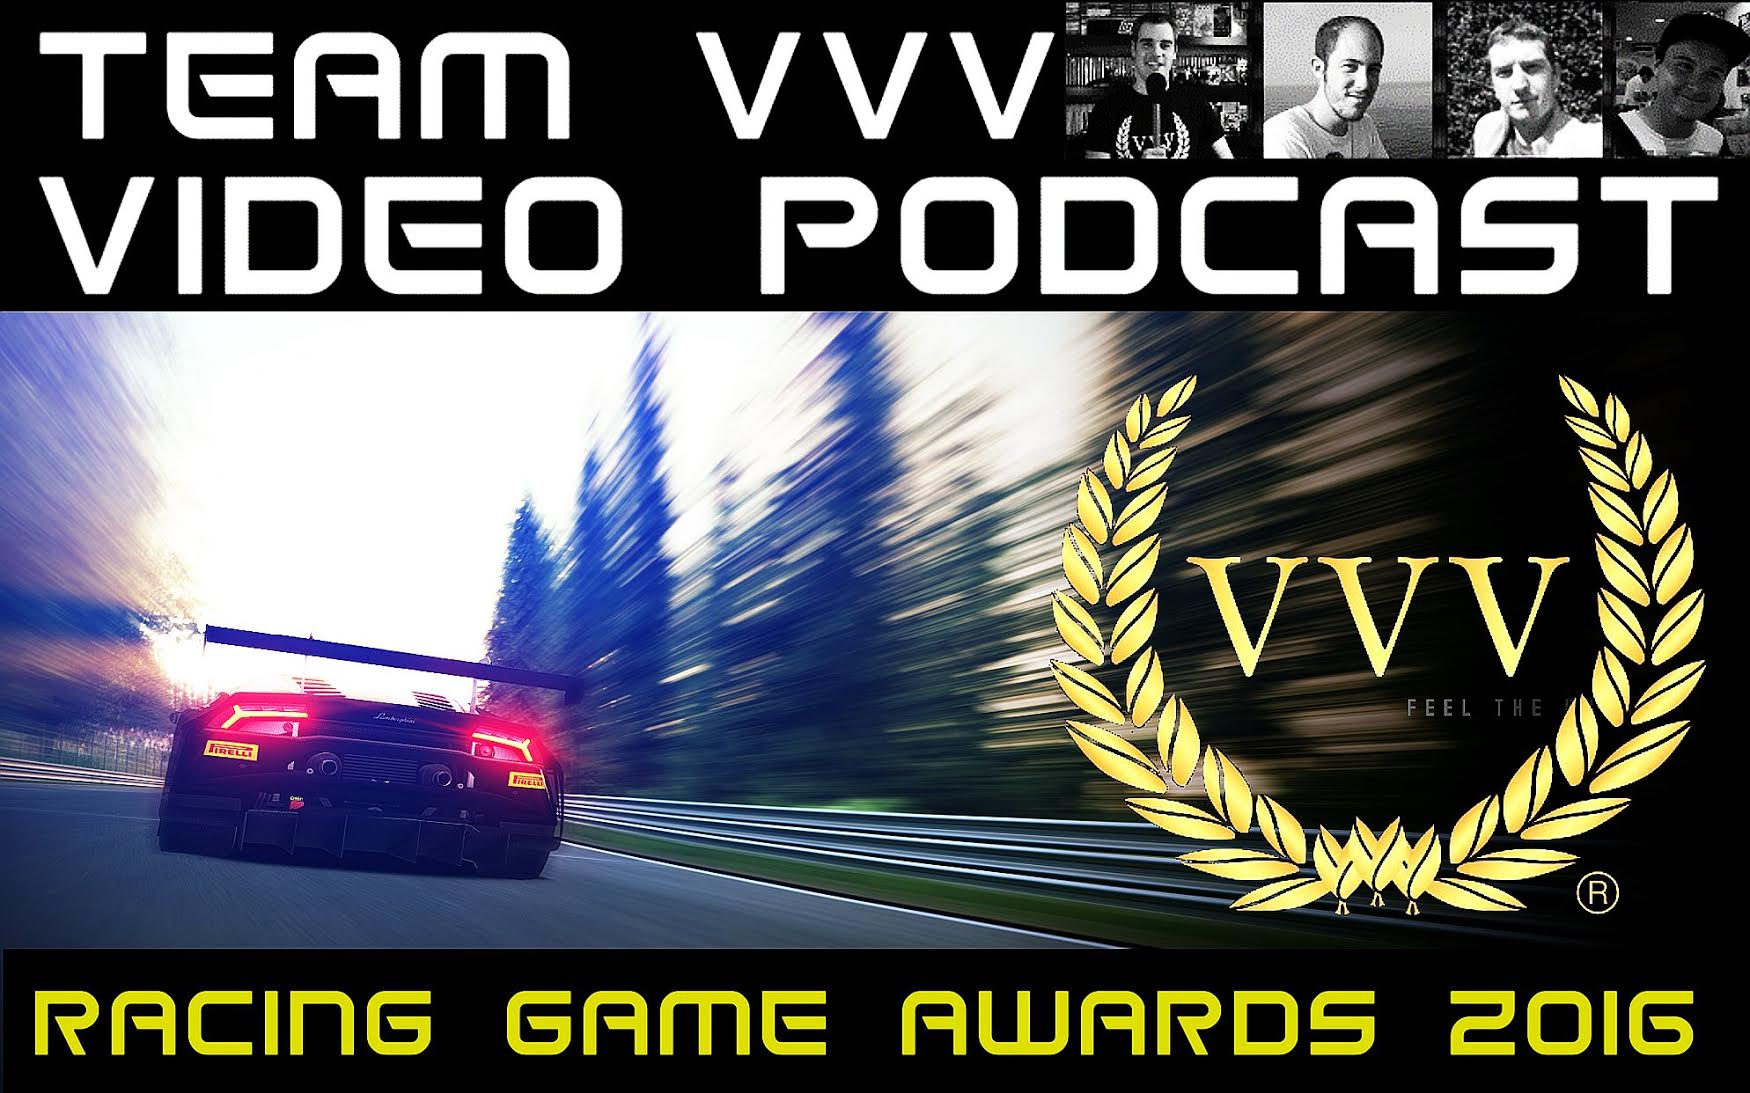 The Team VVV 2016 Racing Game of the Year Awards Video Podcast